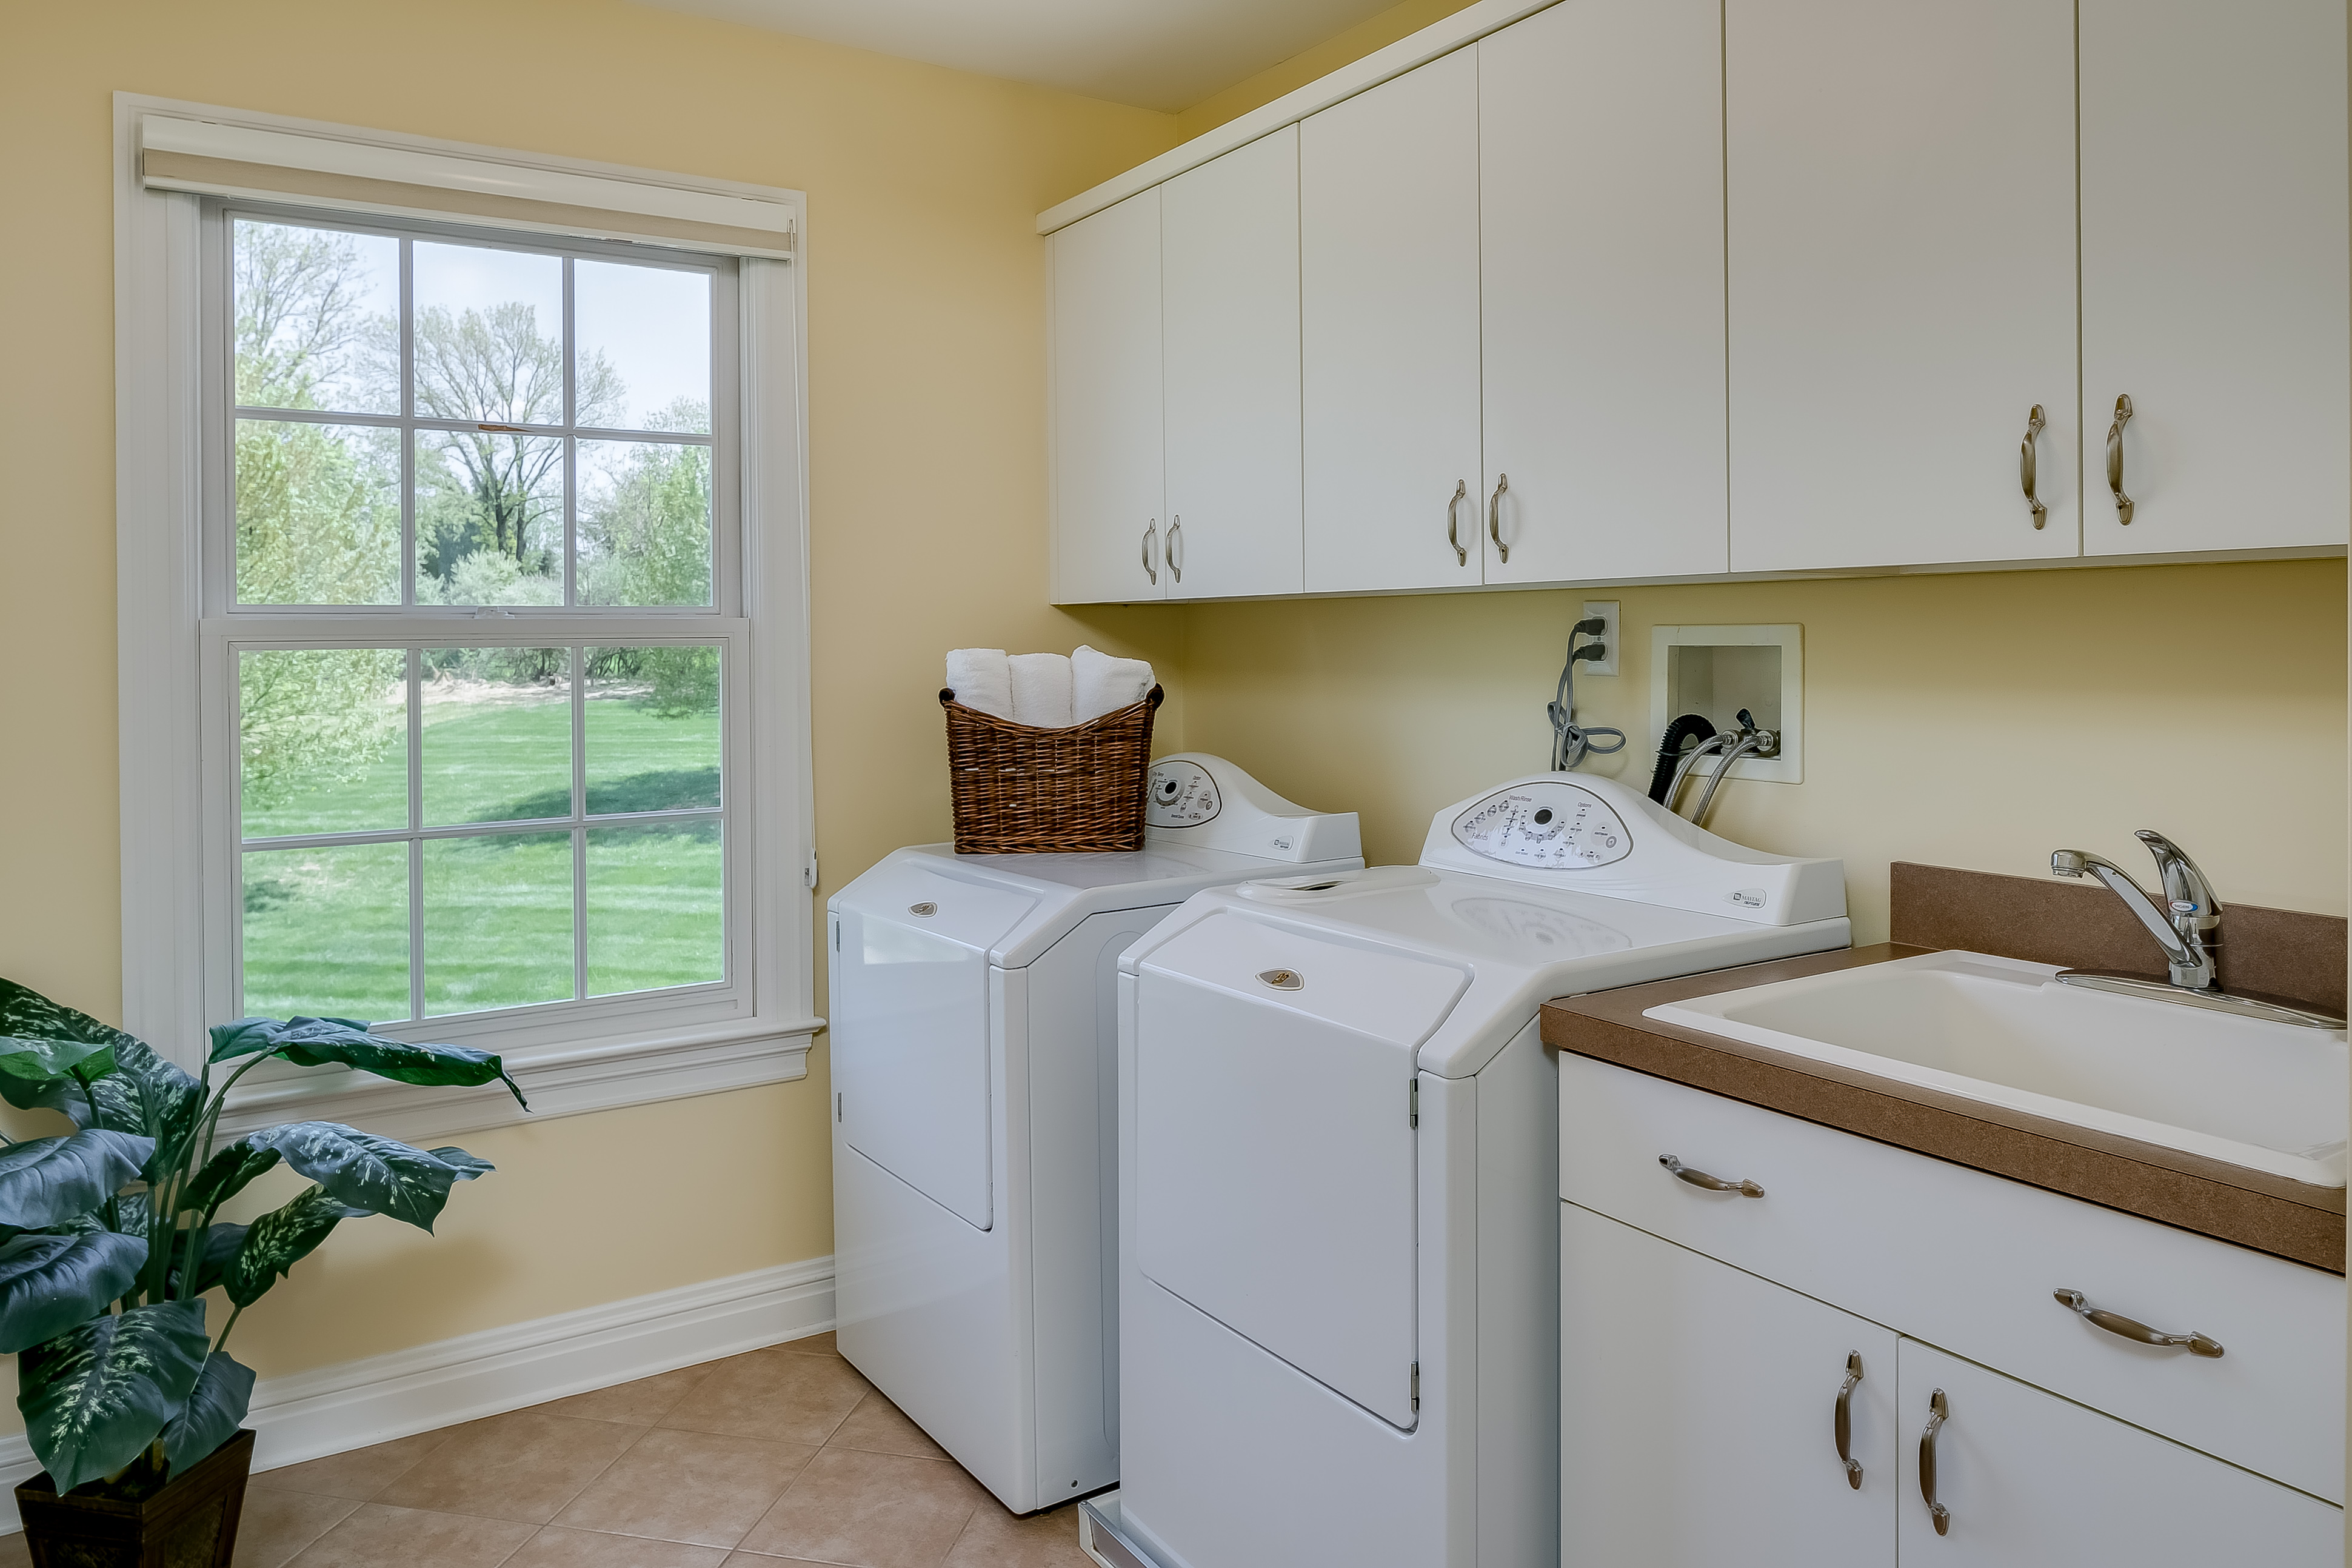 23 8 Snuffys Lane Tewksbury Township — 2nd floor laundry room